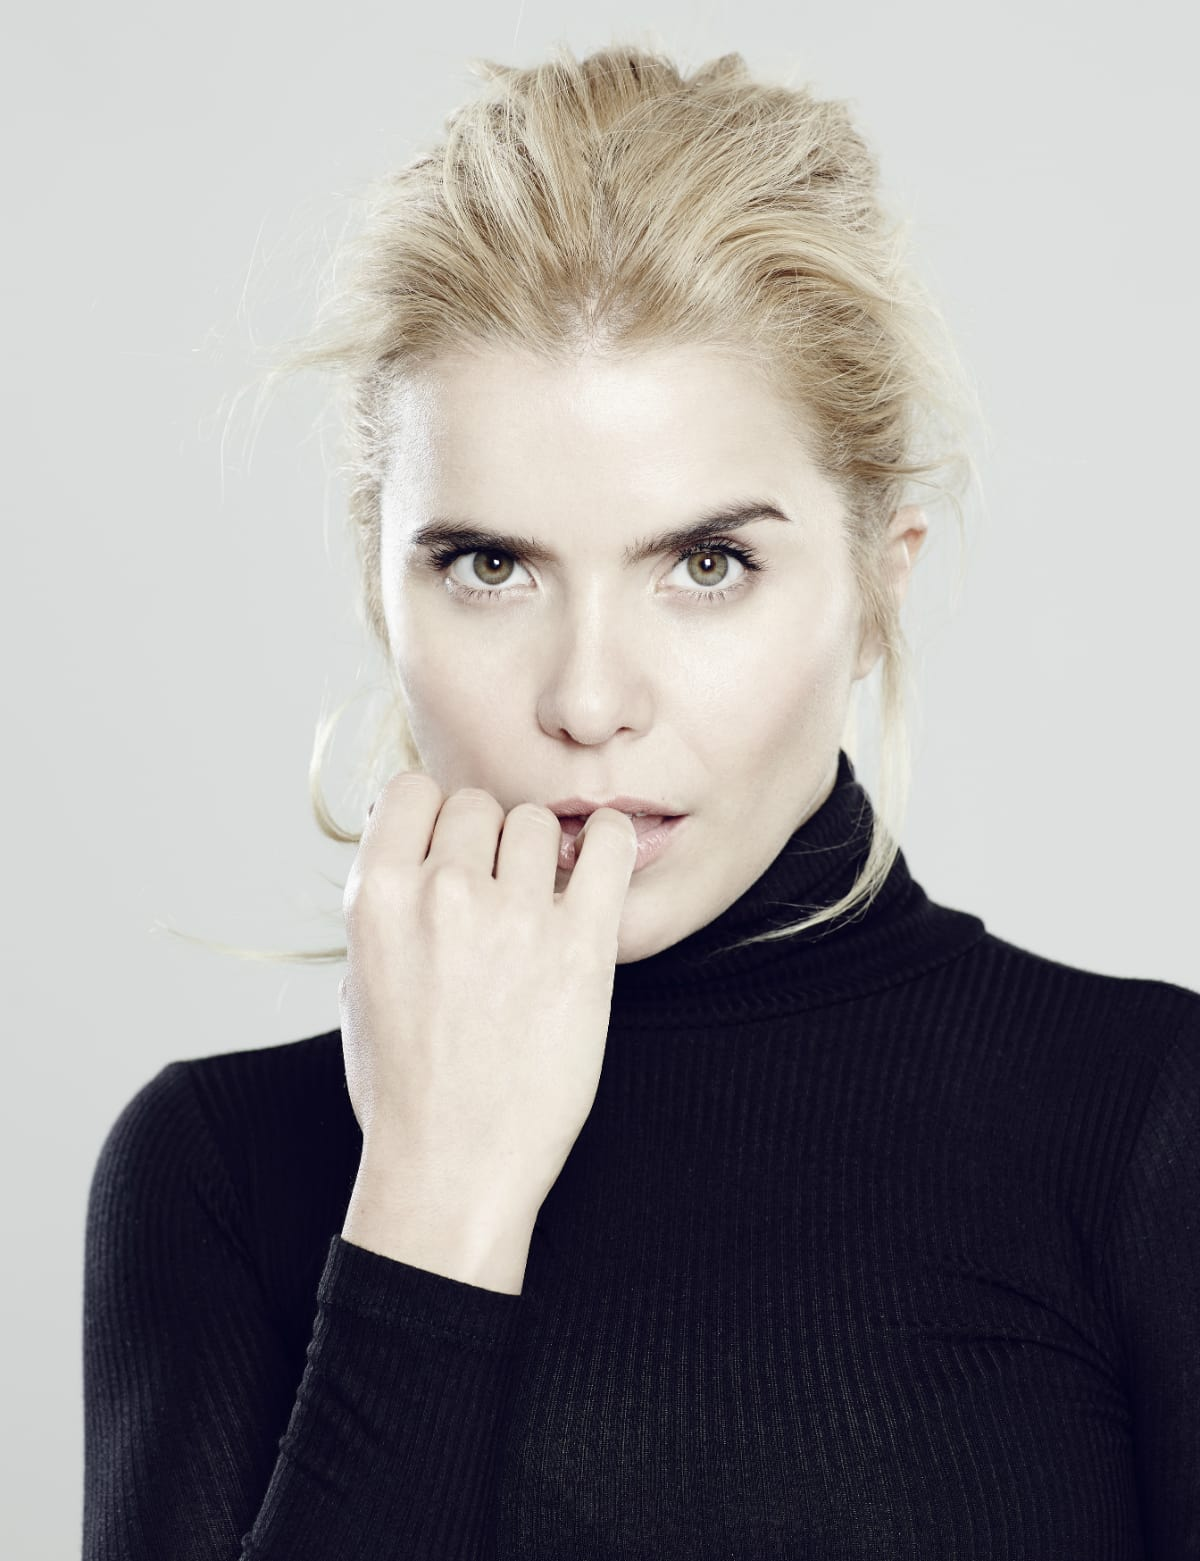 Paloma Faith joined the cast of the upcoming Epix drama series 'Pennyworth' as Bet Sykes